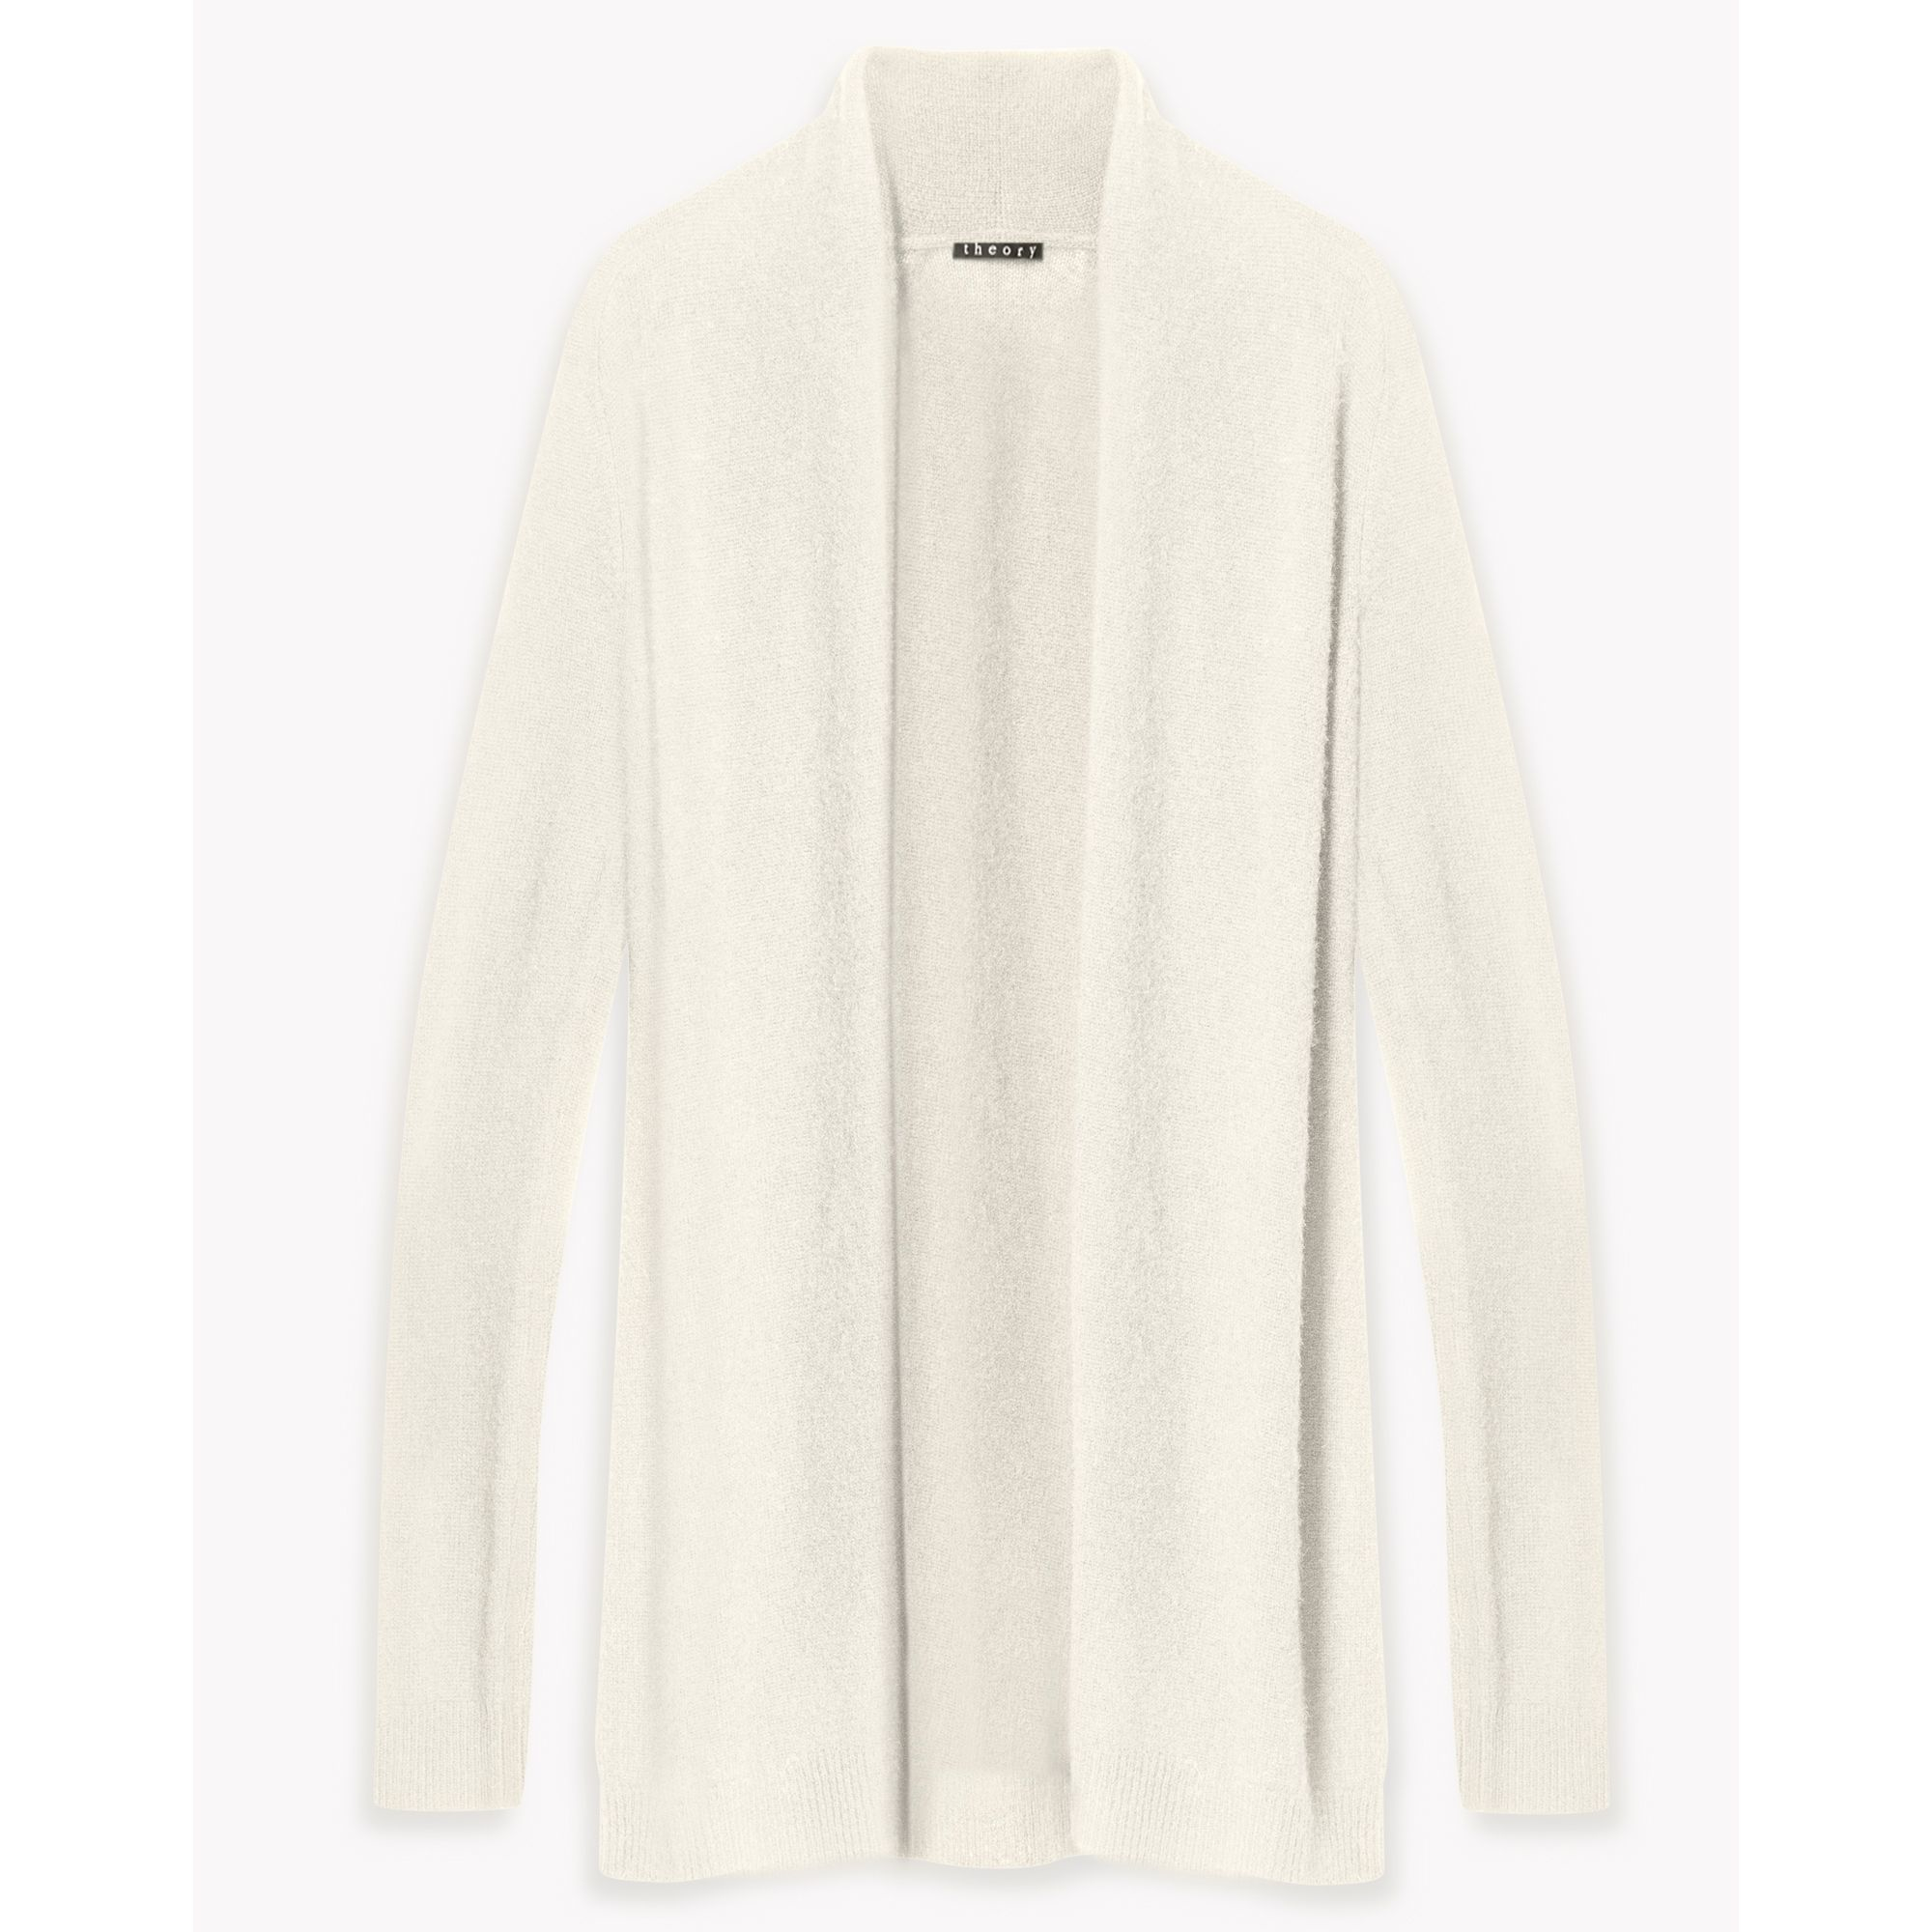 Lyst - Theory Feather Cashmere Open Cardigan in White 10be1fe23